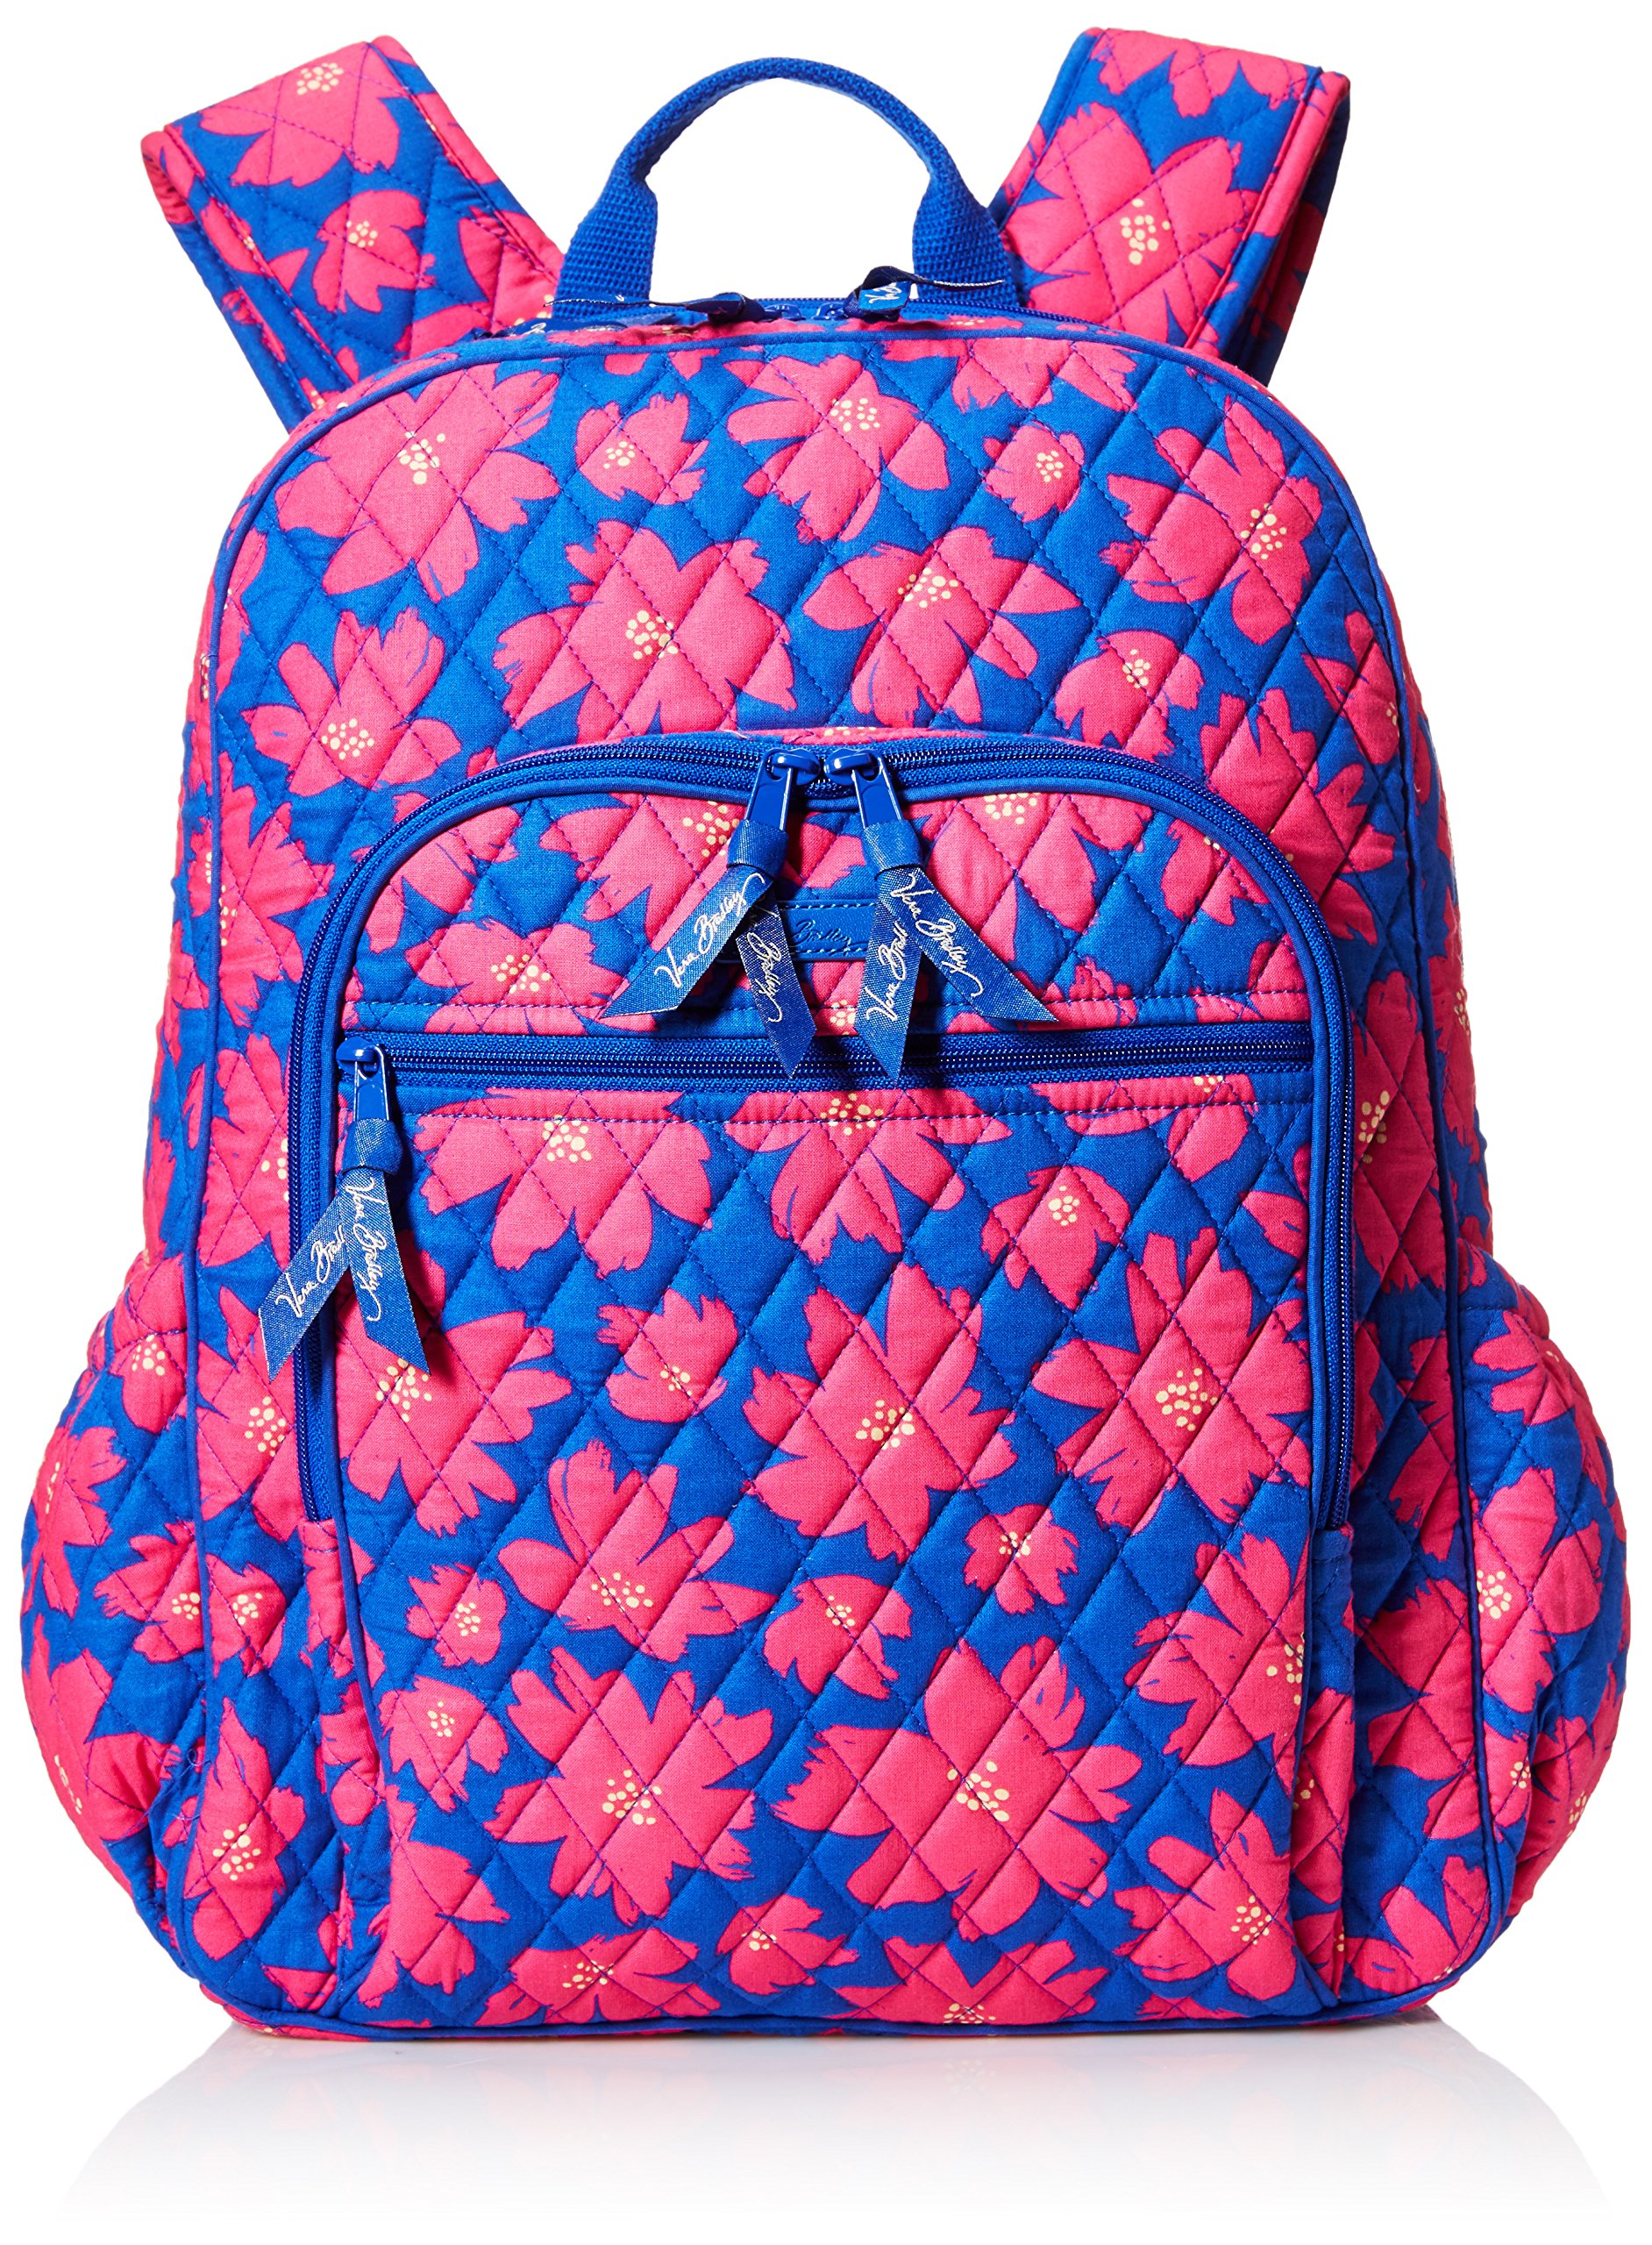 Women's Campus Tech Backpack, Signature Cotton, Art Poppies